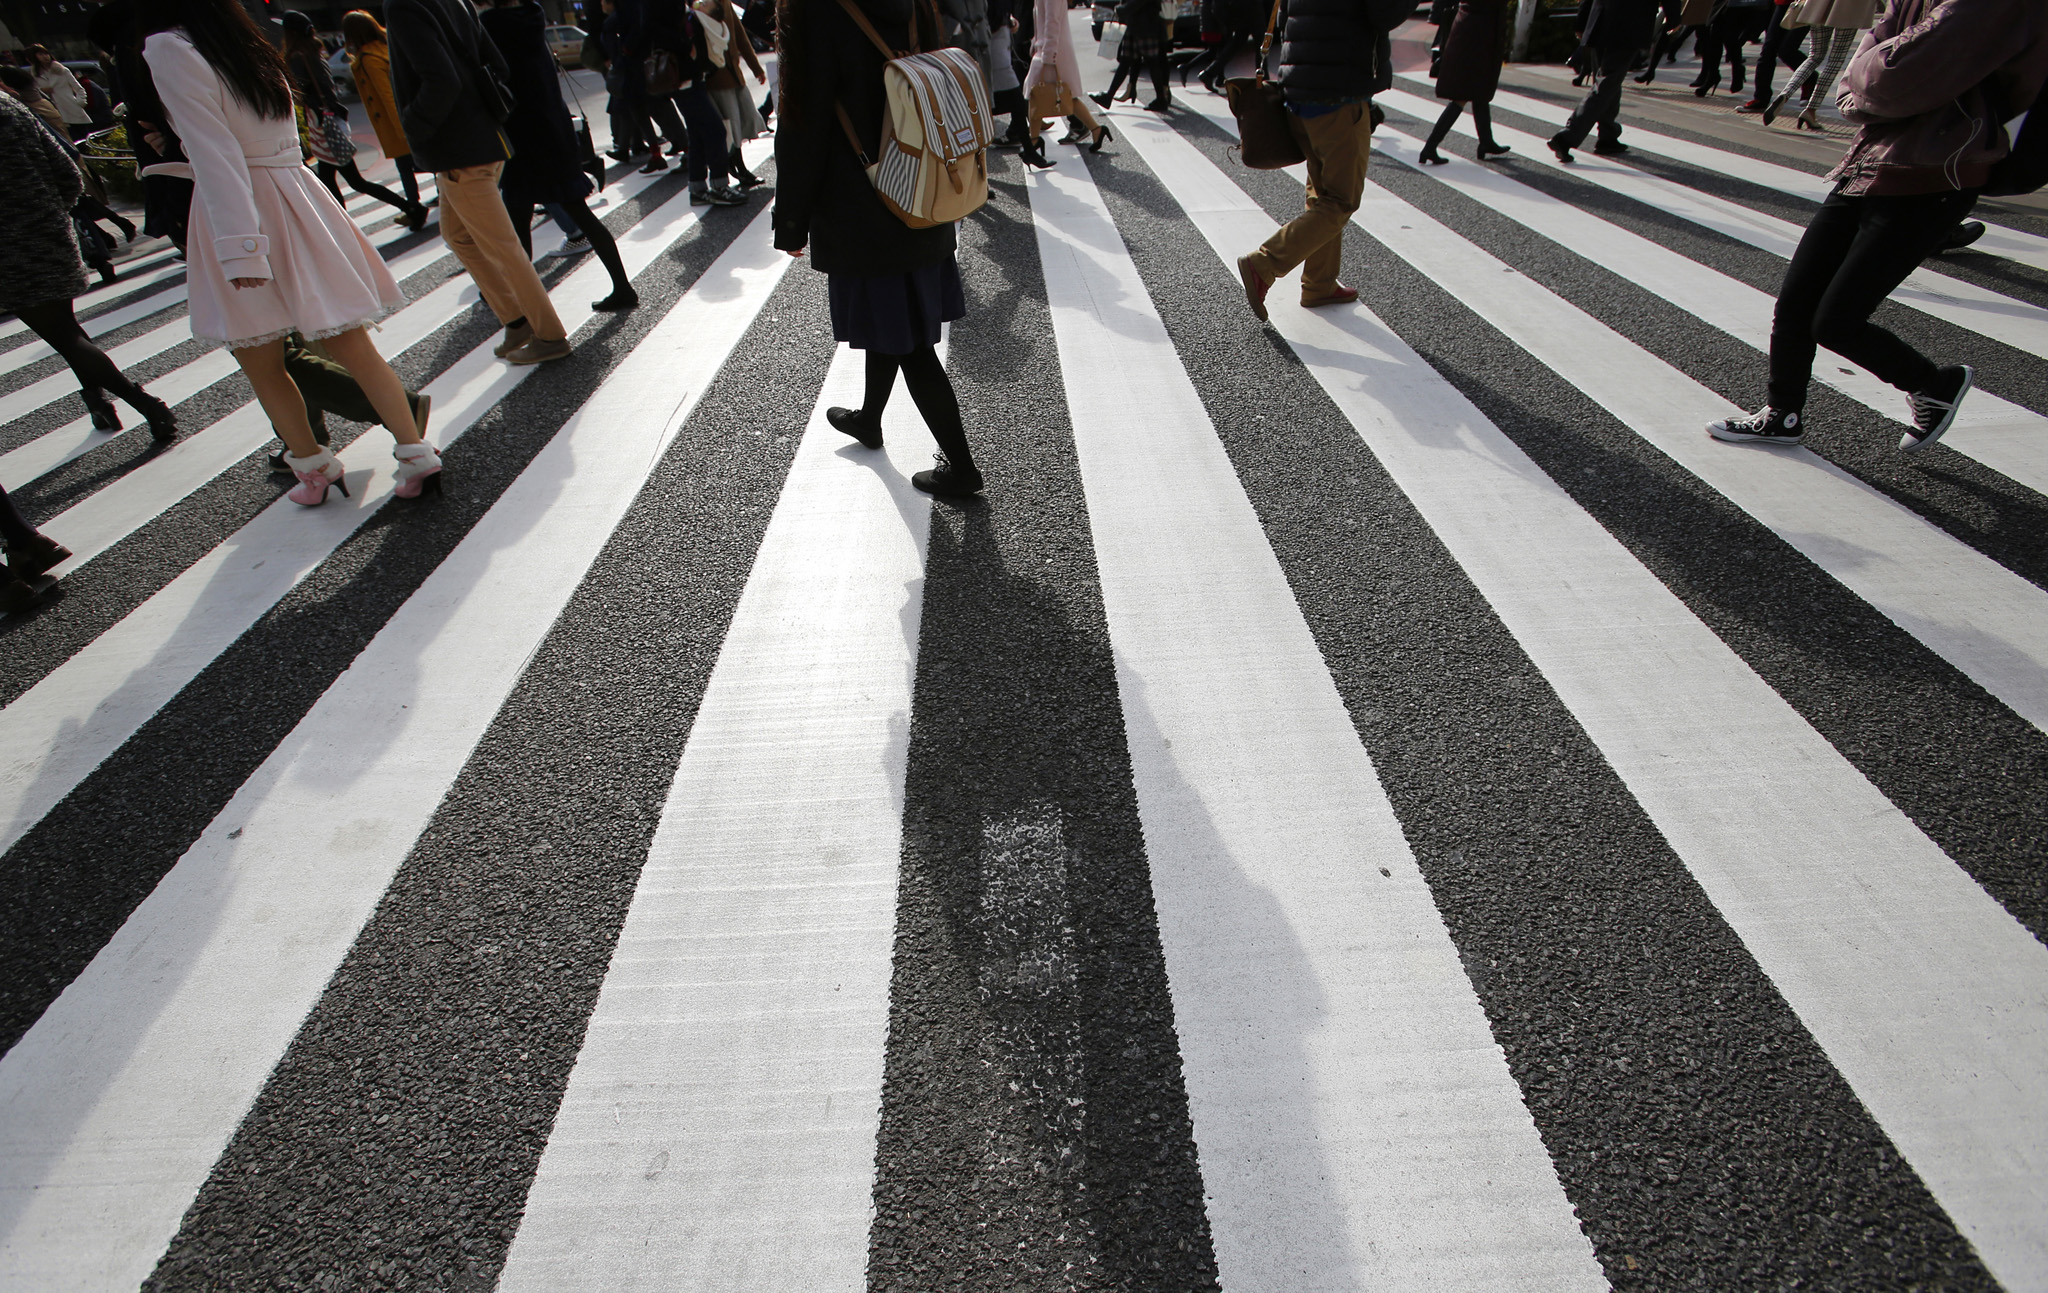 People walk on a pedestrian crossing in Tokyo Wednesday, Jan. 14, 2015. Japan's Cabinet approved a record 96.3 trillion yen ($814 billion) government budget for the coming fiscal year Wednesday after a tax hike to accommodate rising outlays for social security and defense. Rising revenues following the sales tax increase last April enabled Prime Minister Shinzo Abe to raise spending without increasing the proportion financed by new government bonds, though the total national debt is still about twice the size of the economy